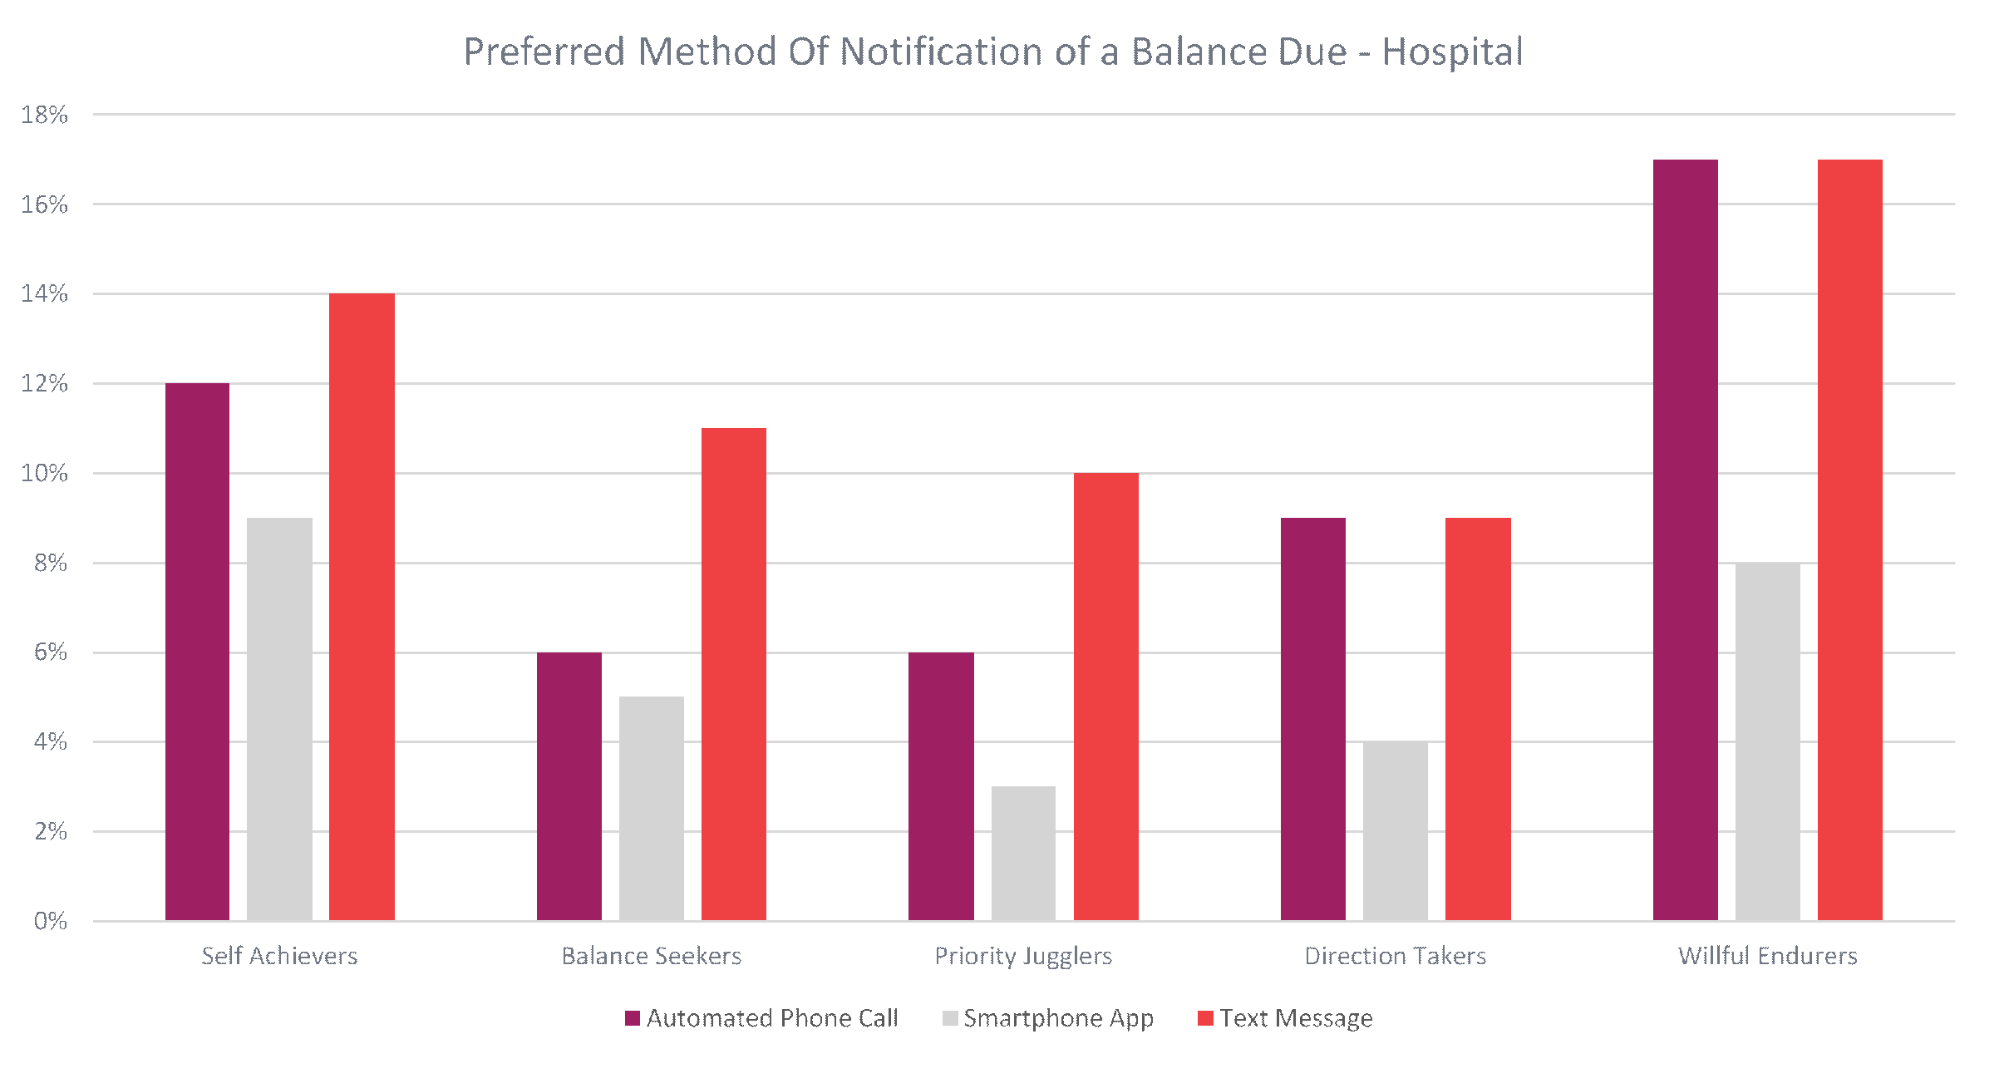 Preferred method of notification of a balanced due - hospital